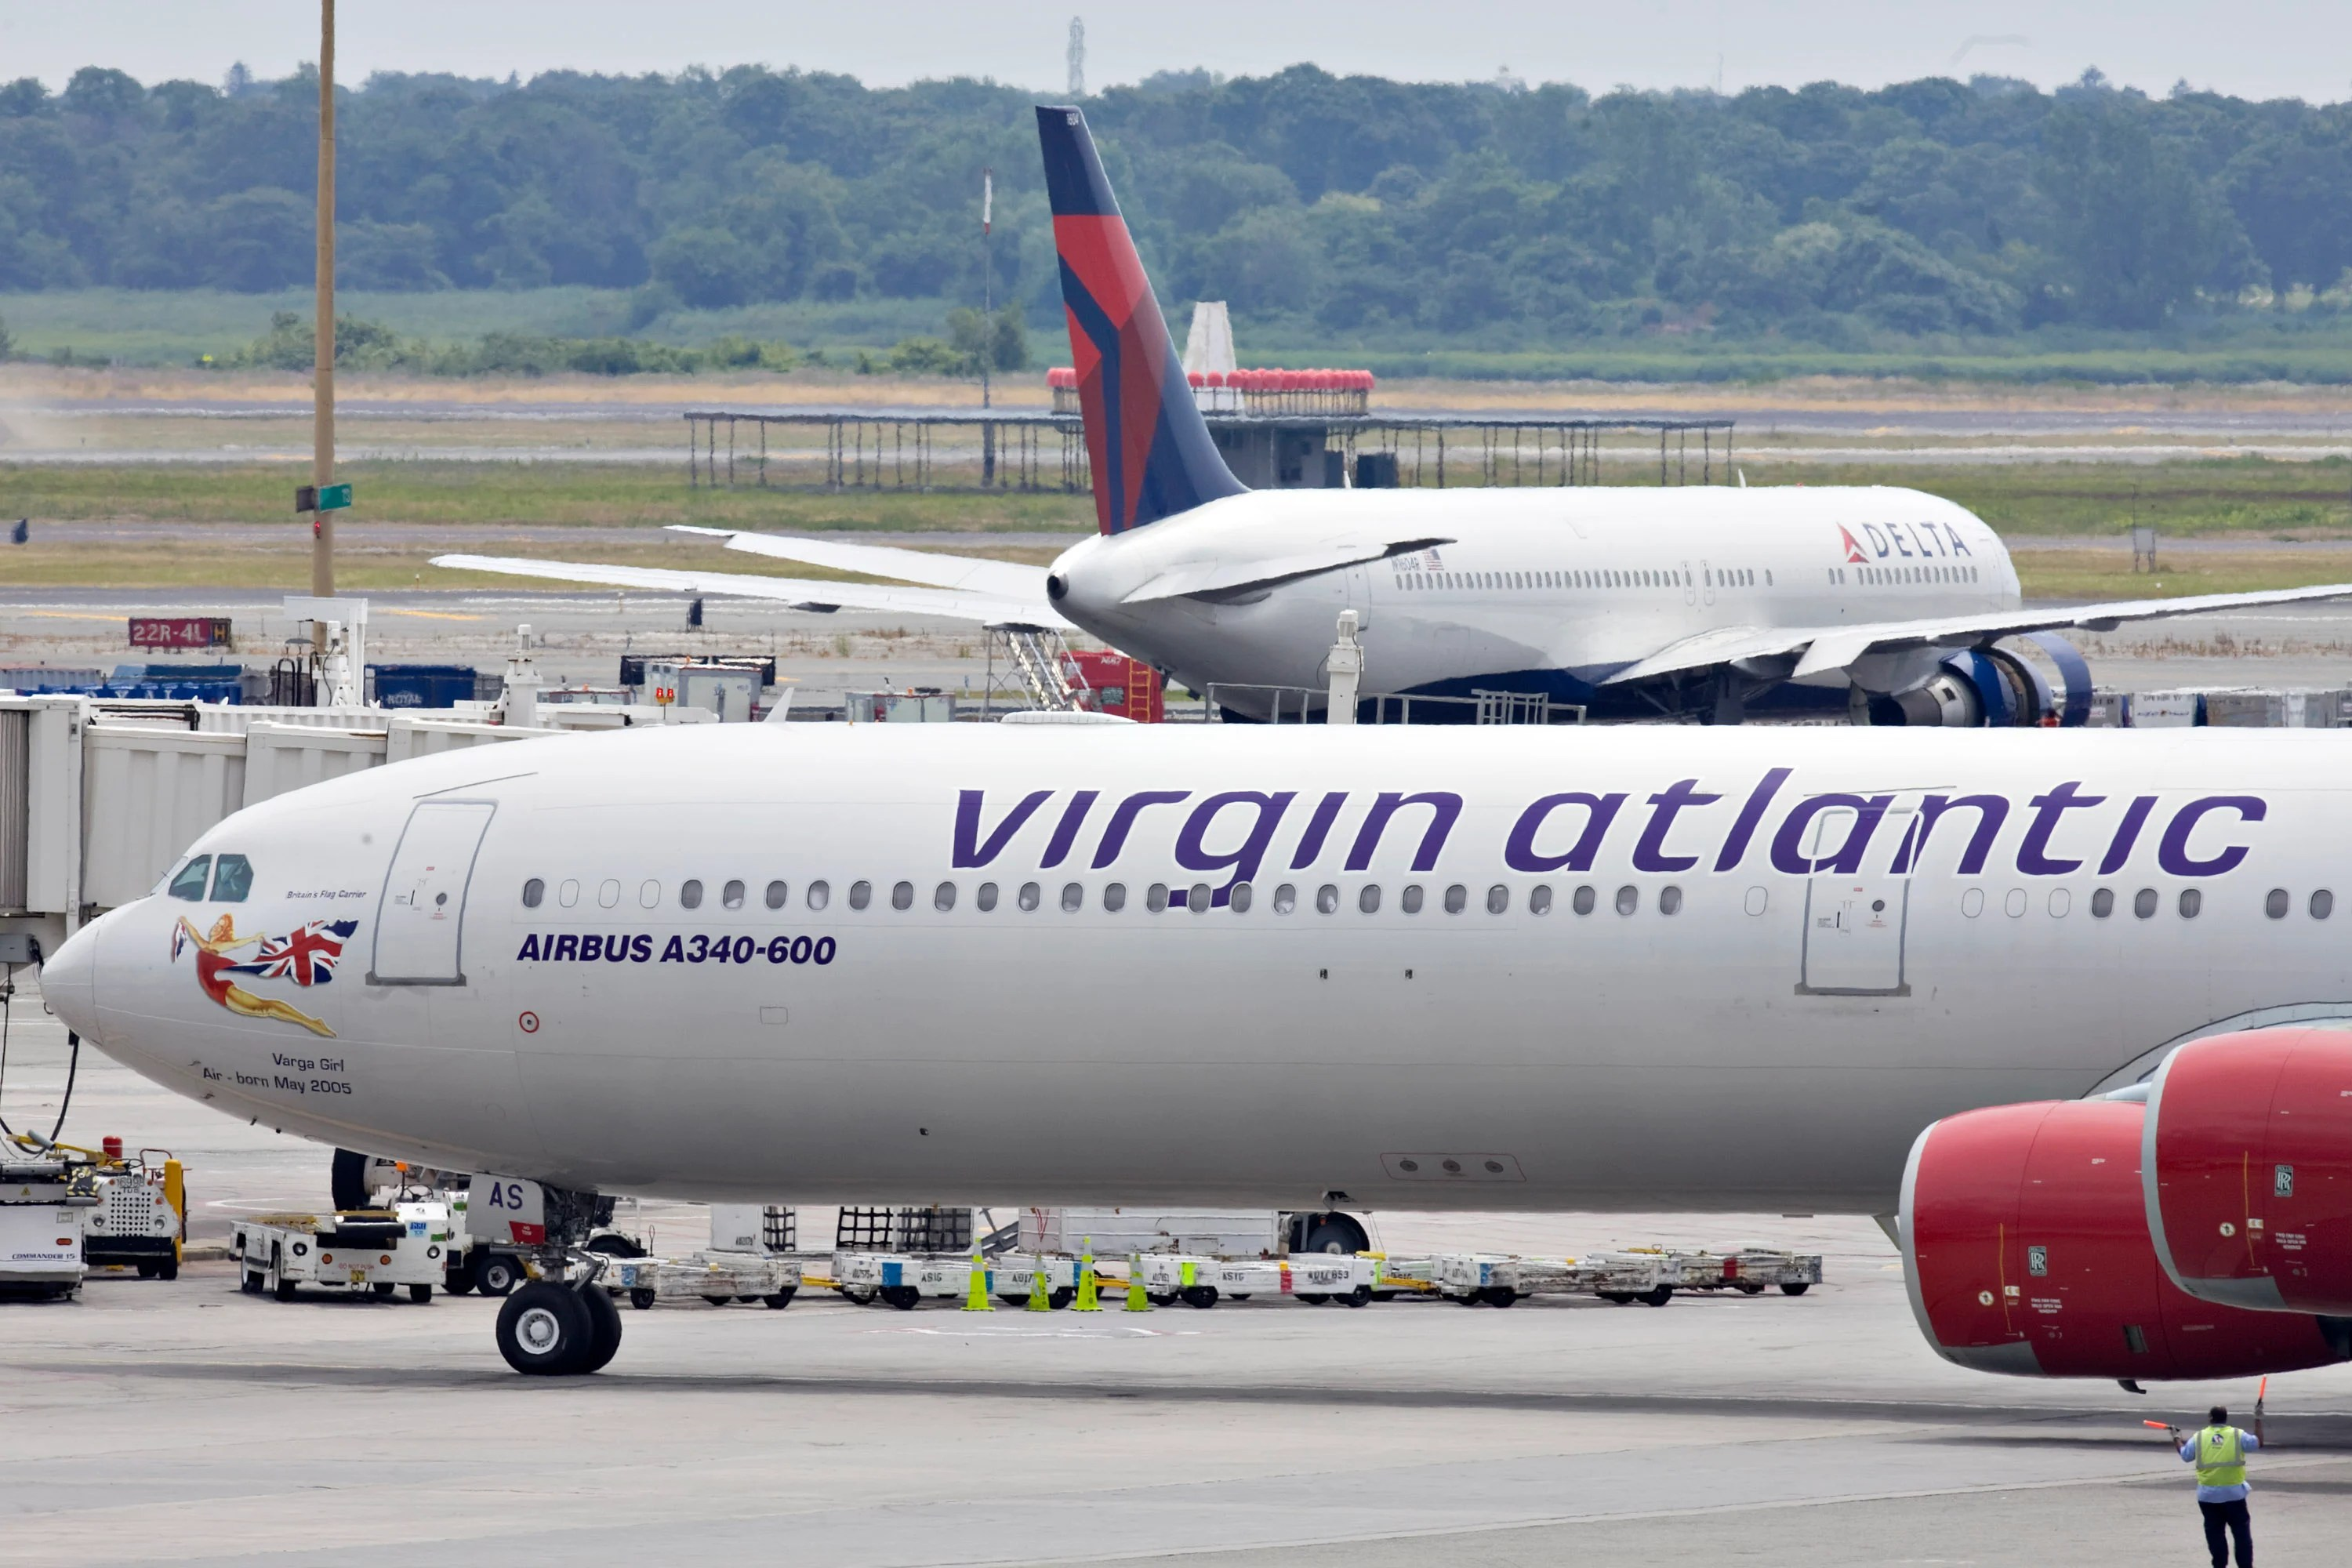 Virgin Atlantic unveils plans for new routes, including in the US